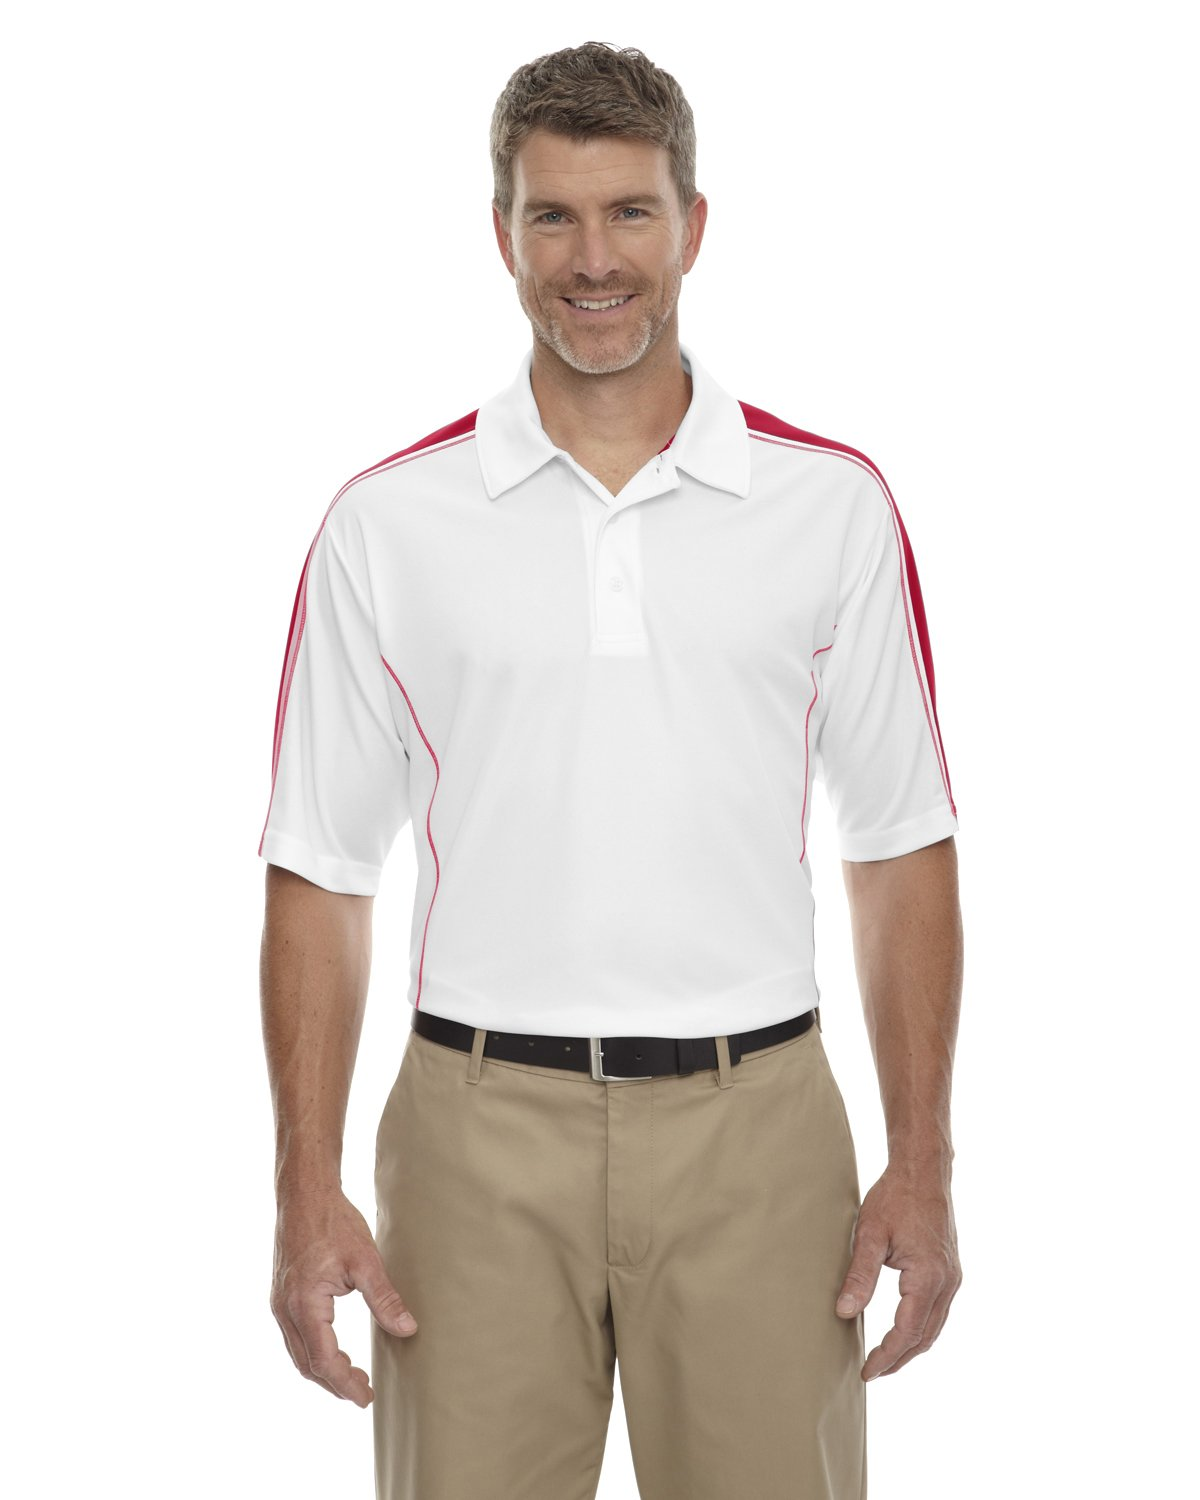 Ash City Men's Performance Pique Color-Block Polo Shirt, White/CL RED 850, Small by Ash City - Extreme